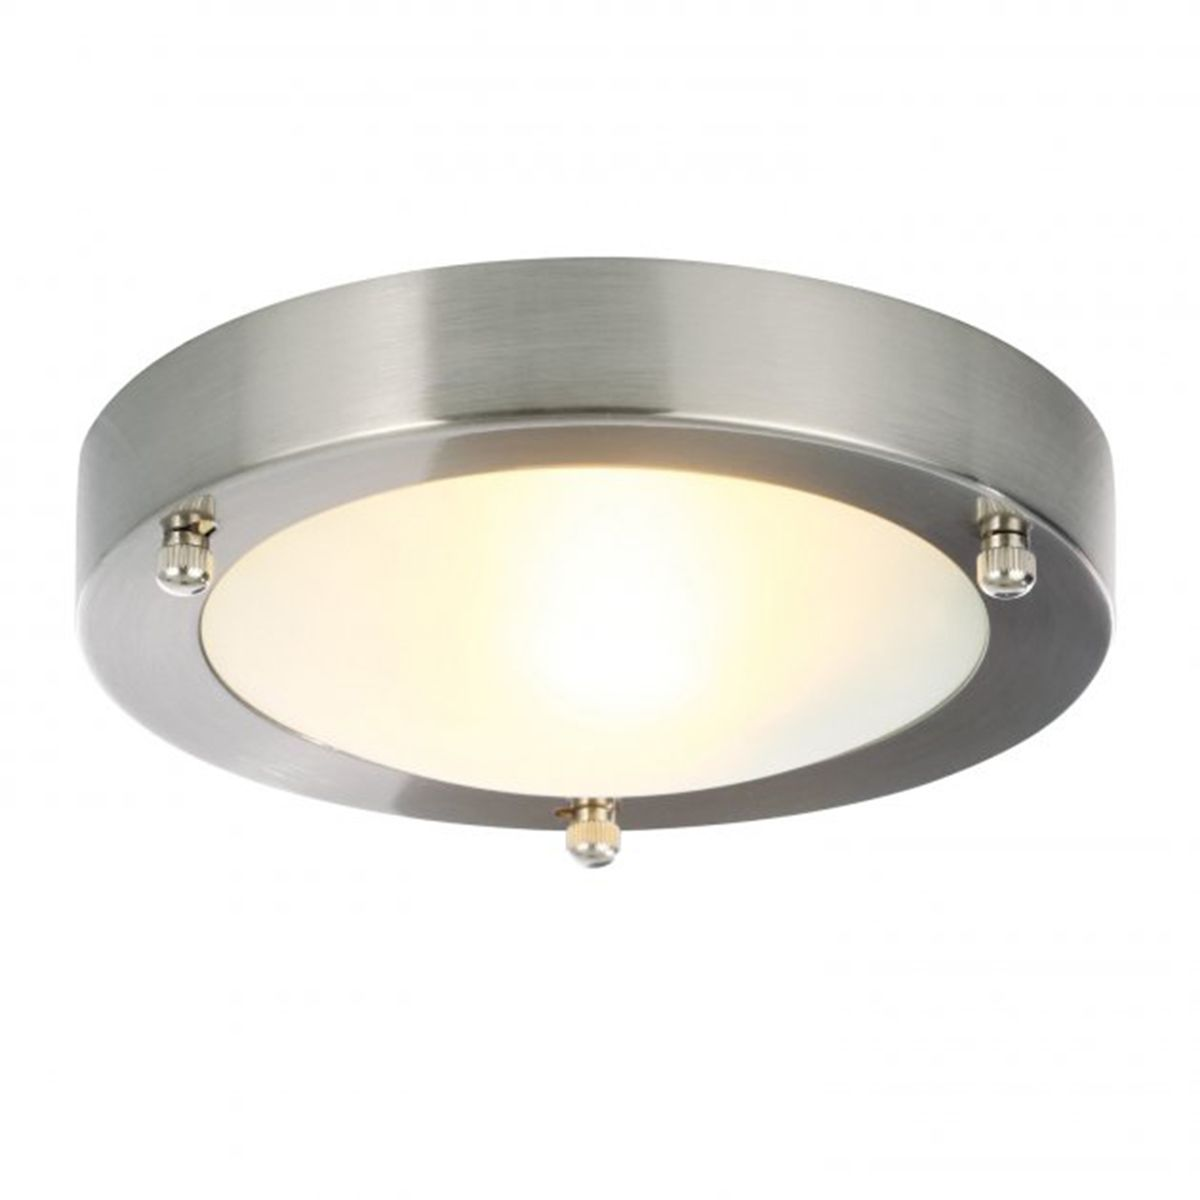 Frontline Chrome Cane Round Flush Ceiling Light 180mm